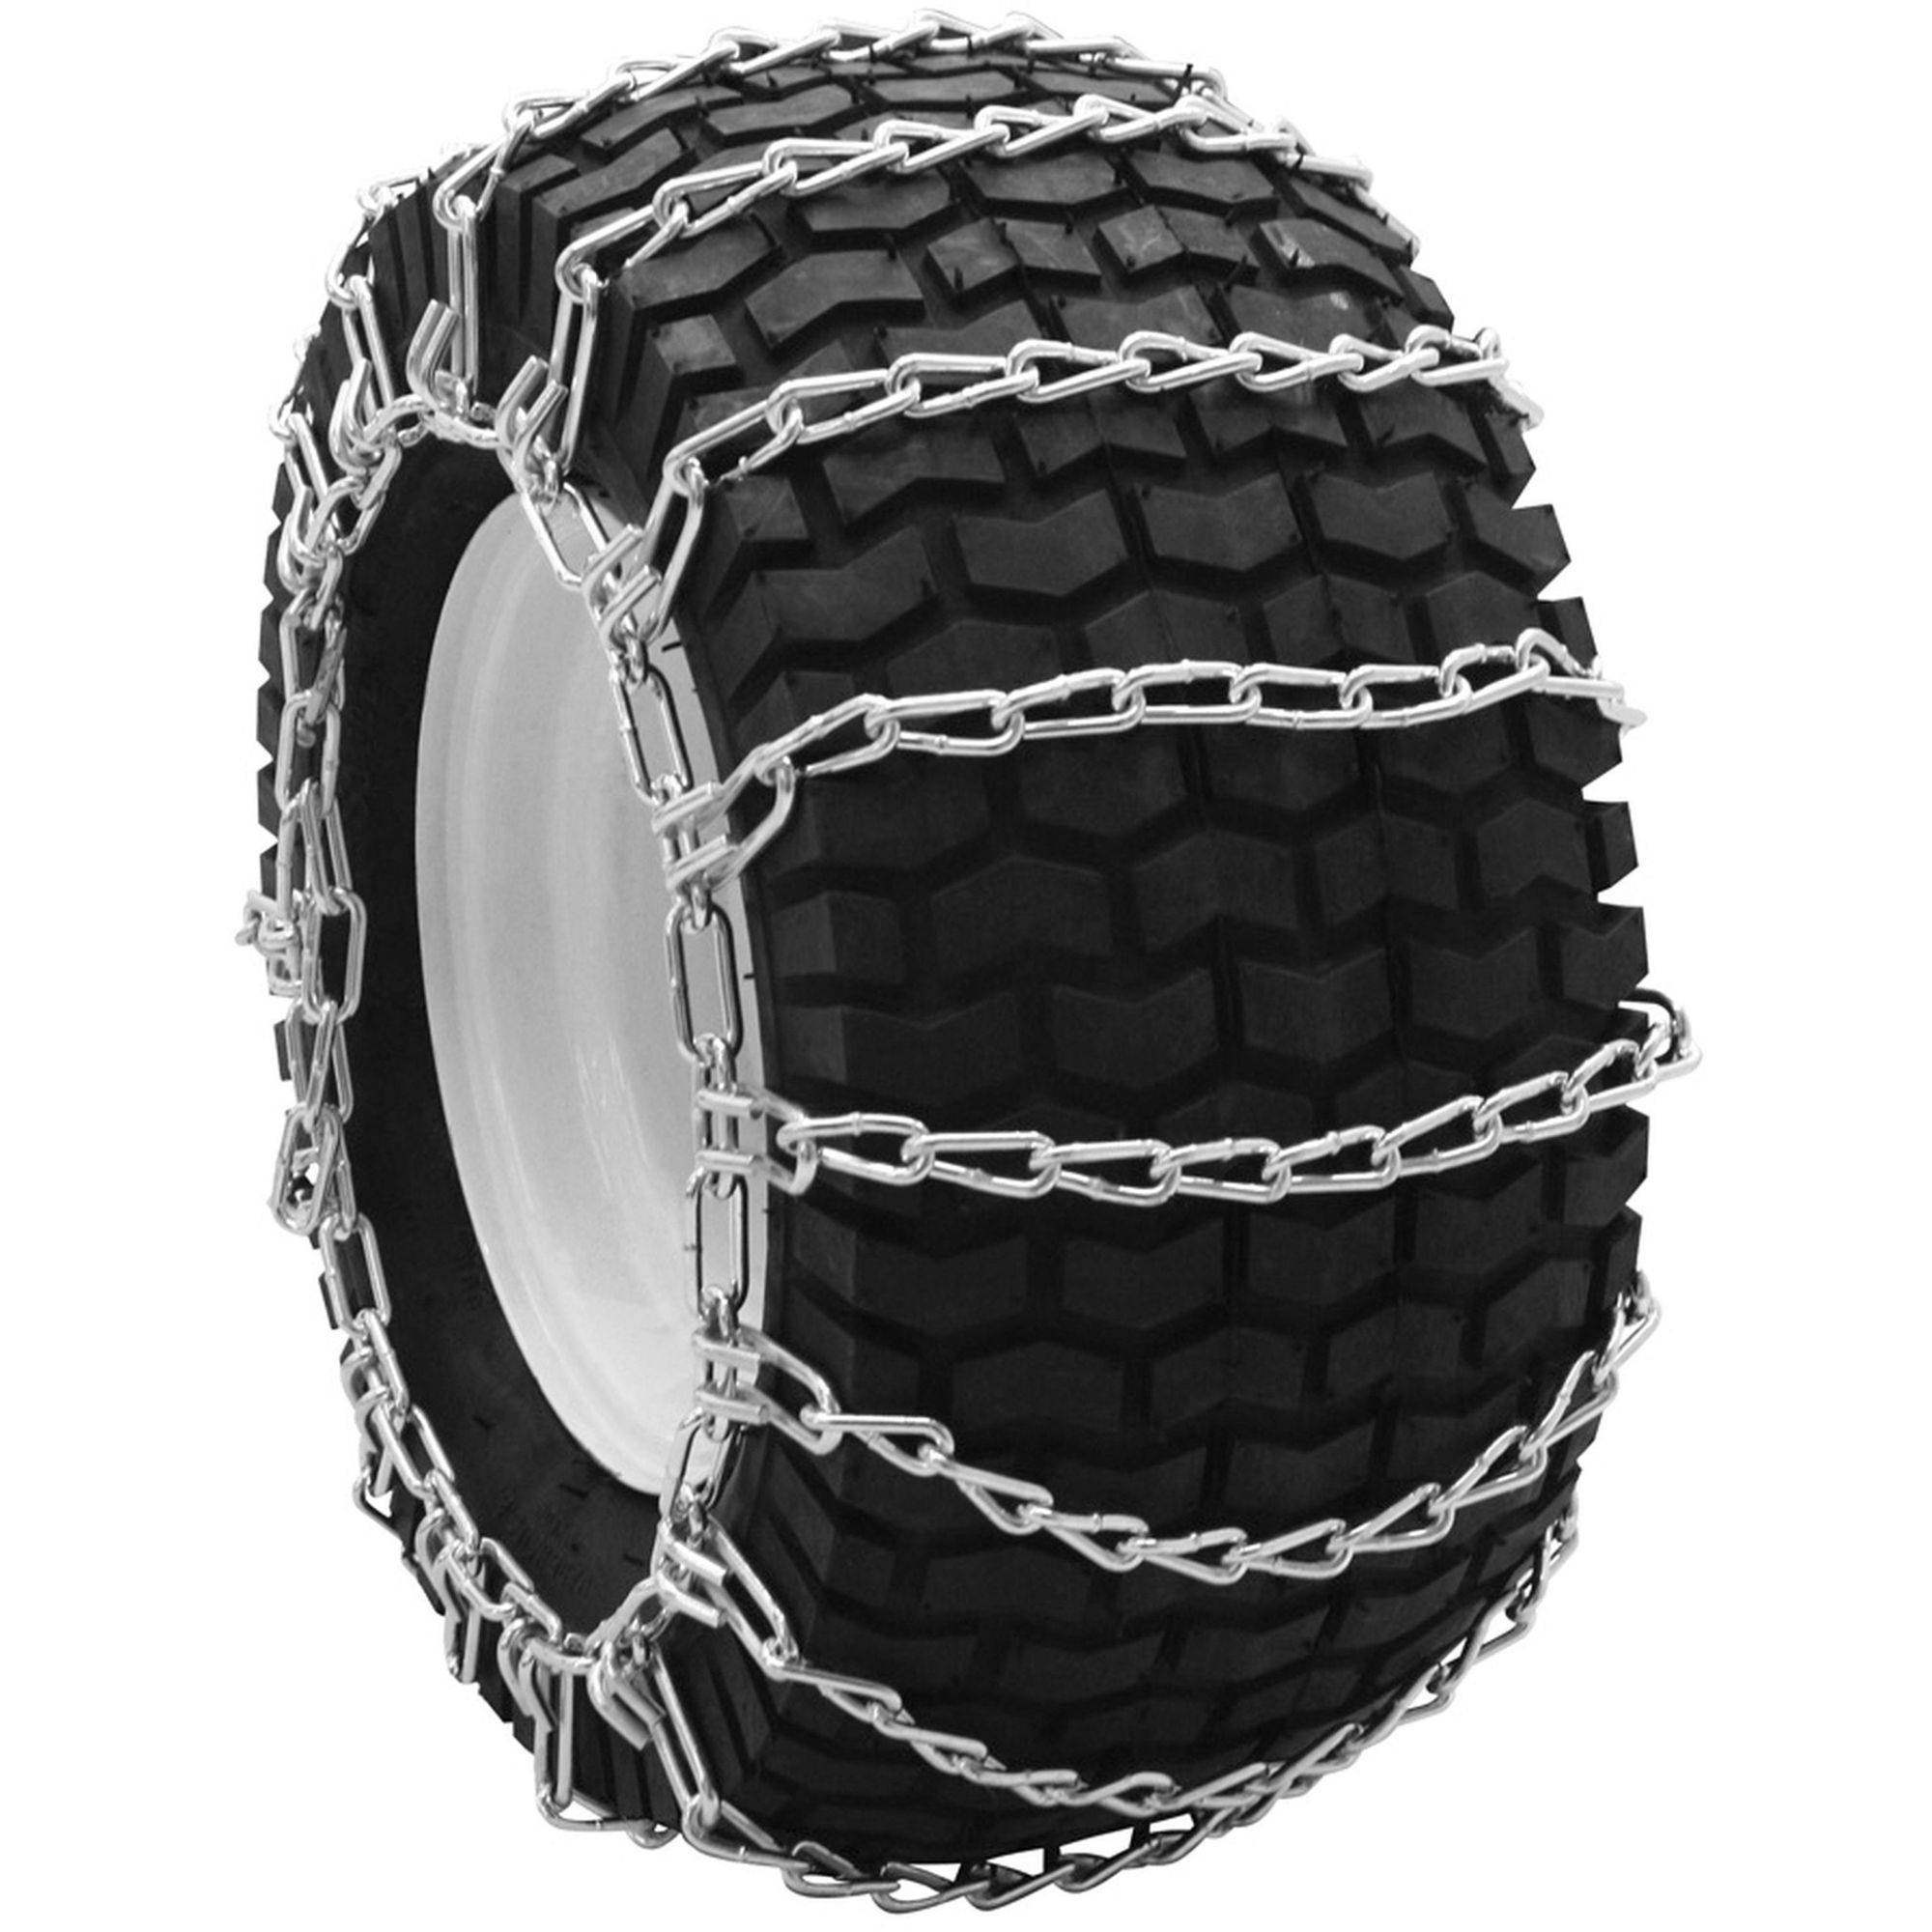 Snowblower and Lawn Tractor Tire Chains, 20X10.00X10, 2 Link Spacing by Peerless Chain Company